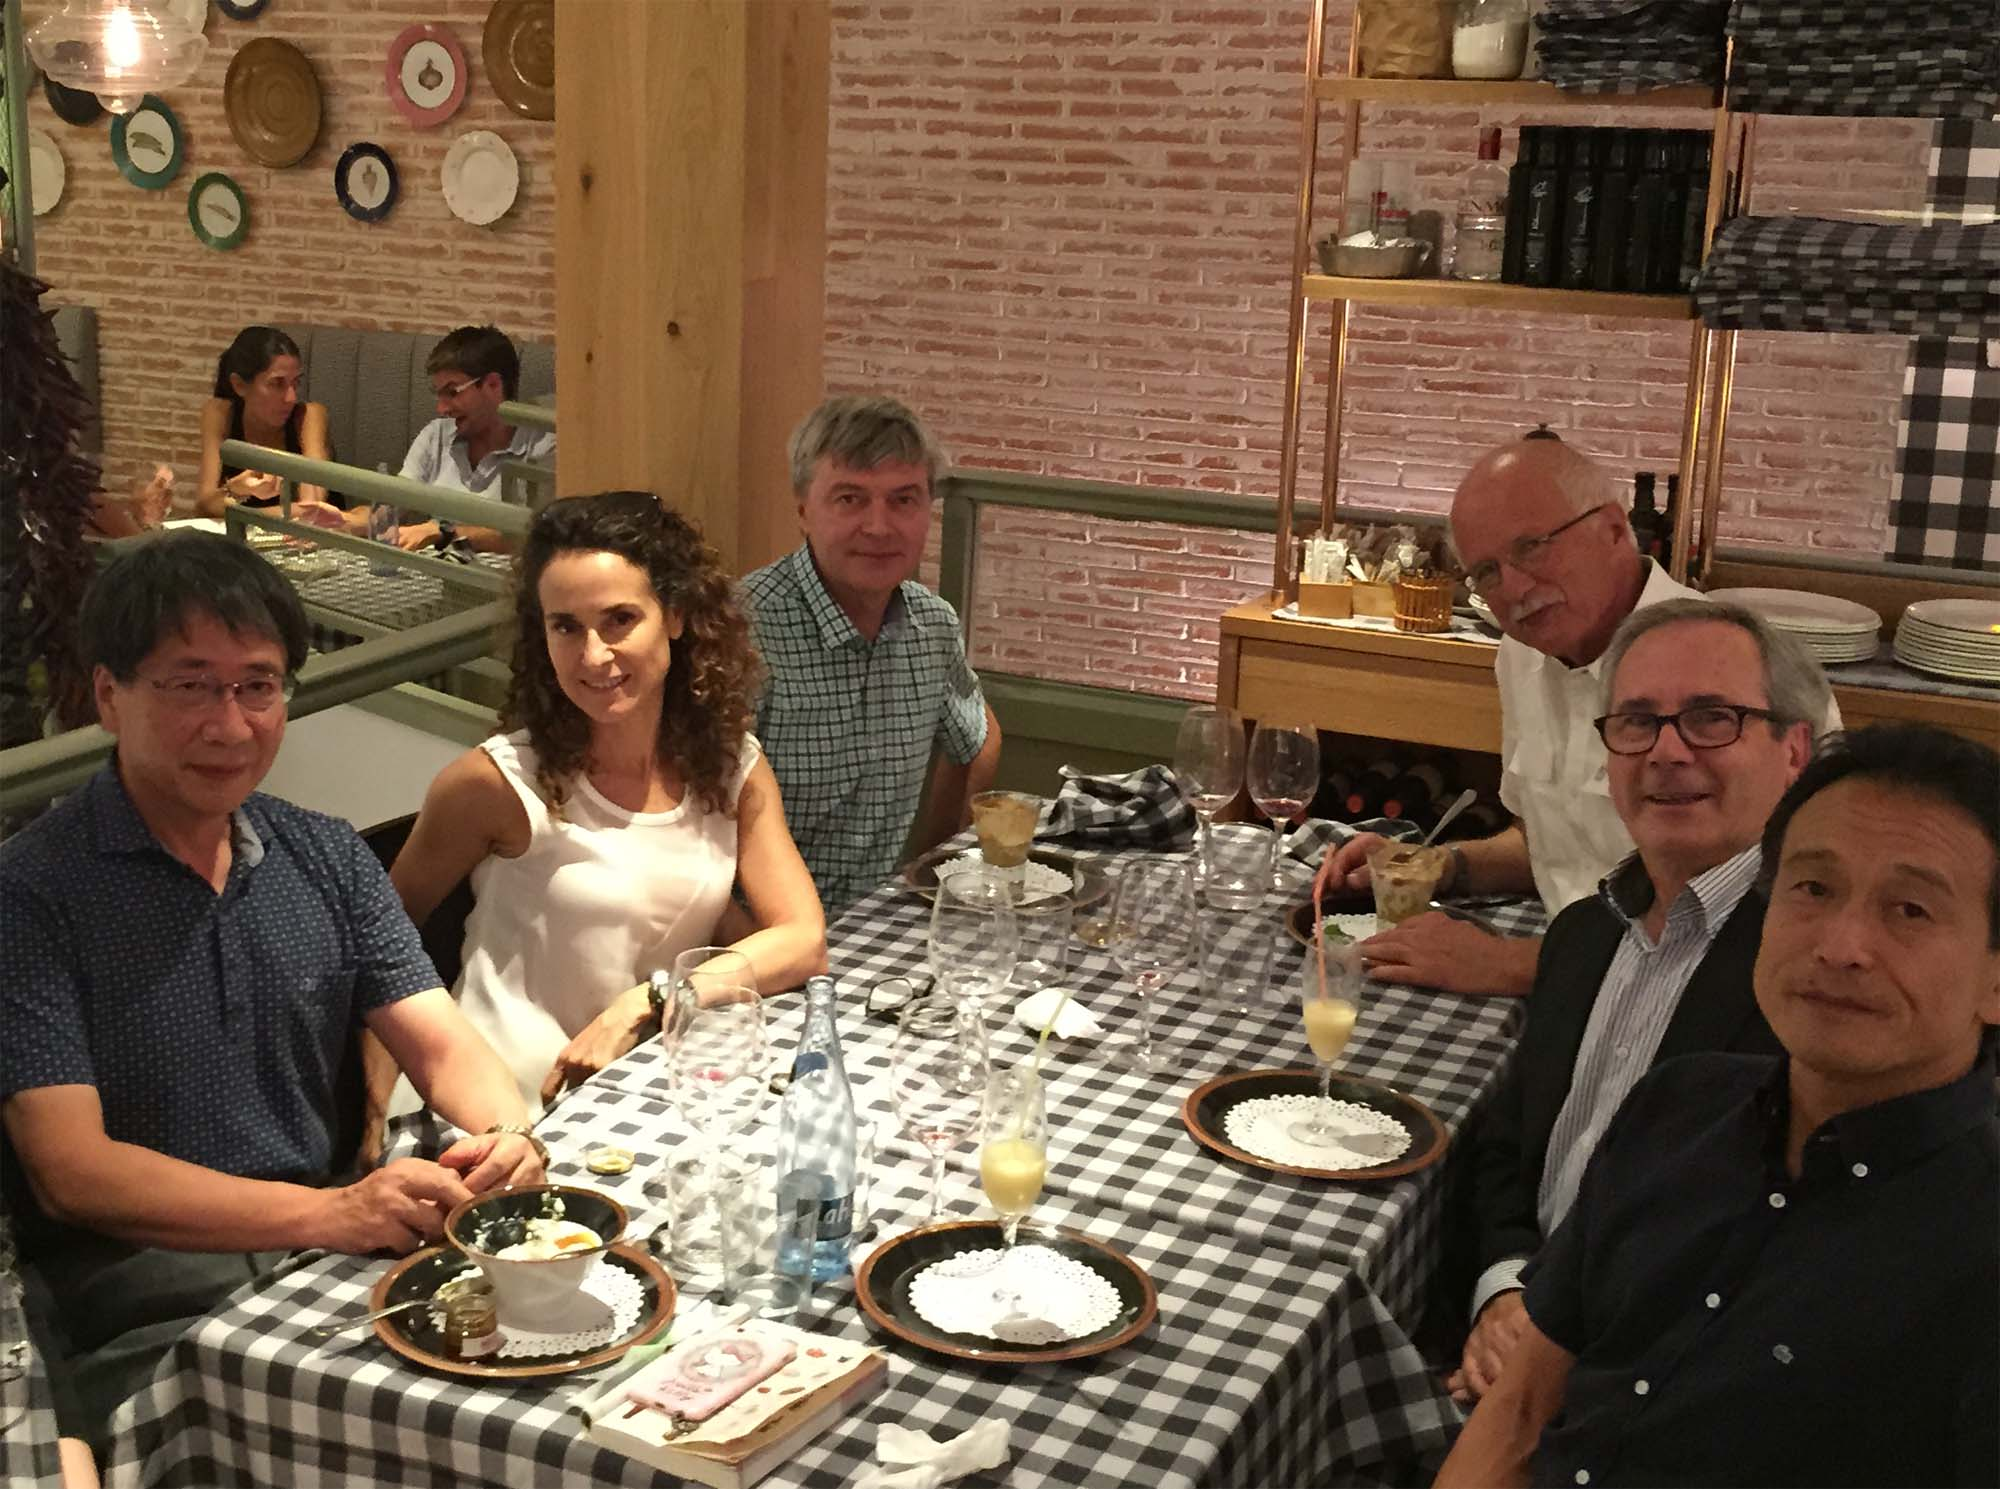 Passing of the gavel in Madrid: Passing of the gavel in Madrid: Past President Tetsuo Irifune and Secretary Sakura Pascarelli (left) at dinner with newly elected President Fernando Rodriguez (right, center) and Vice-Presidents Katsuya Shimizu (right, front), Jim Schilling (right, back). Picture taken in Madrid, Spain, at the Joint 25th AIRAPT and 53rd EHPRG International Conference on High Pressure Science and Technology, September 2015.</p /> </span></p>  </div>    <div class=